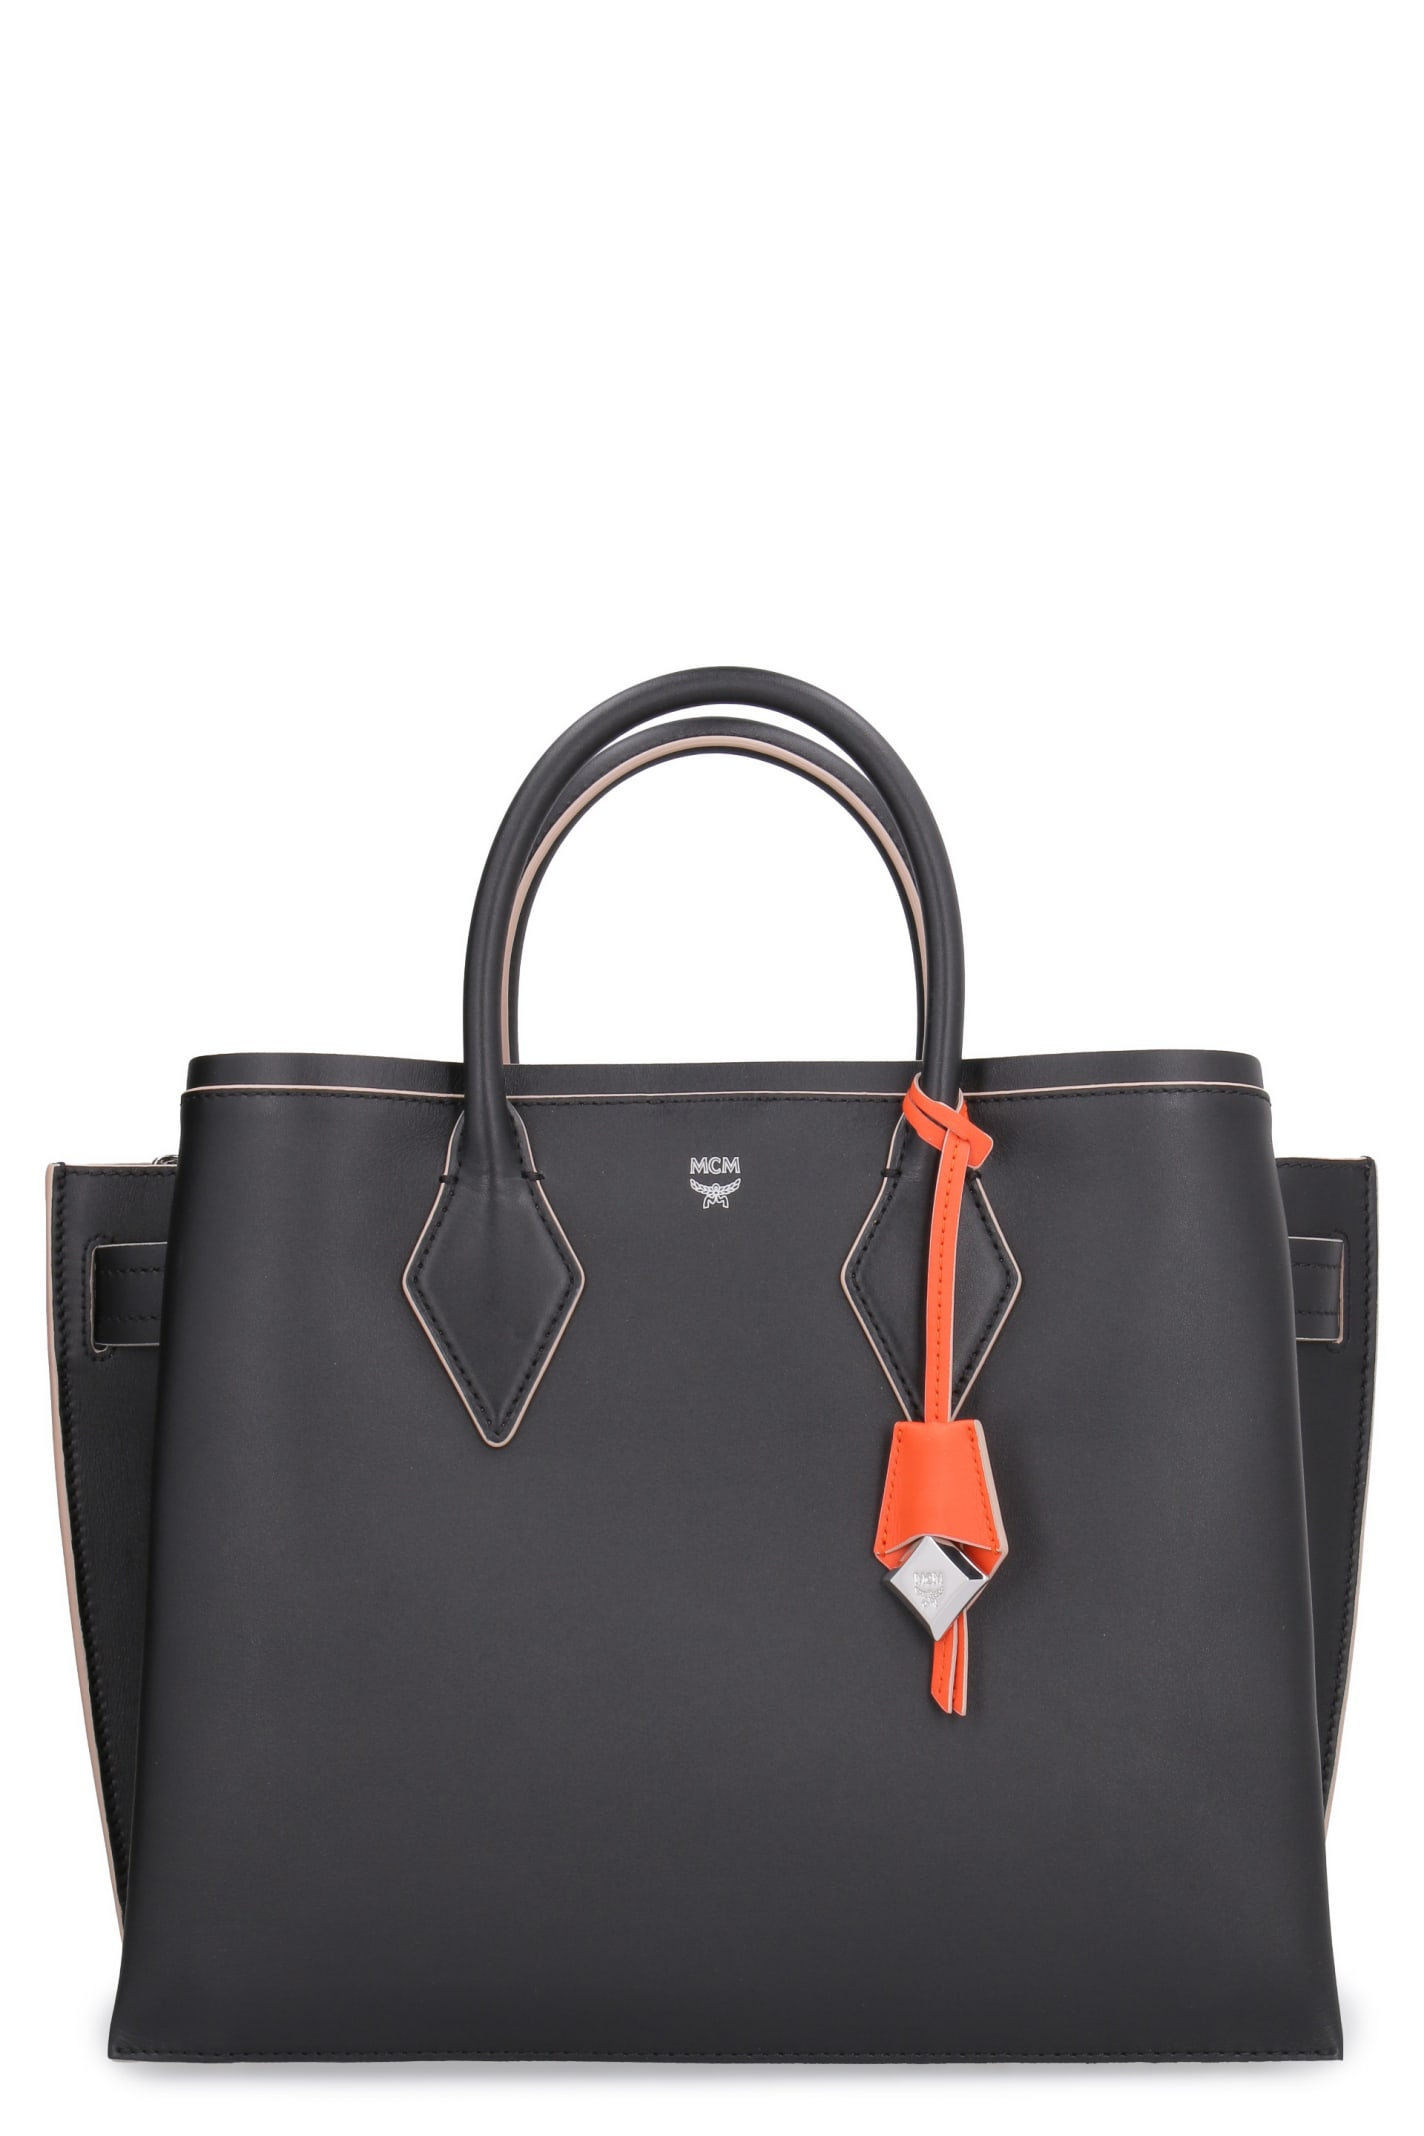 MCM Neo Milla Leather Tote